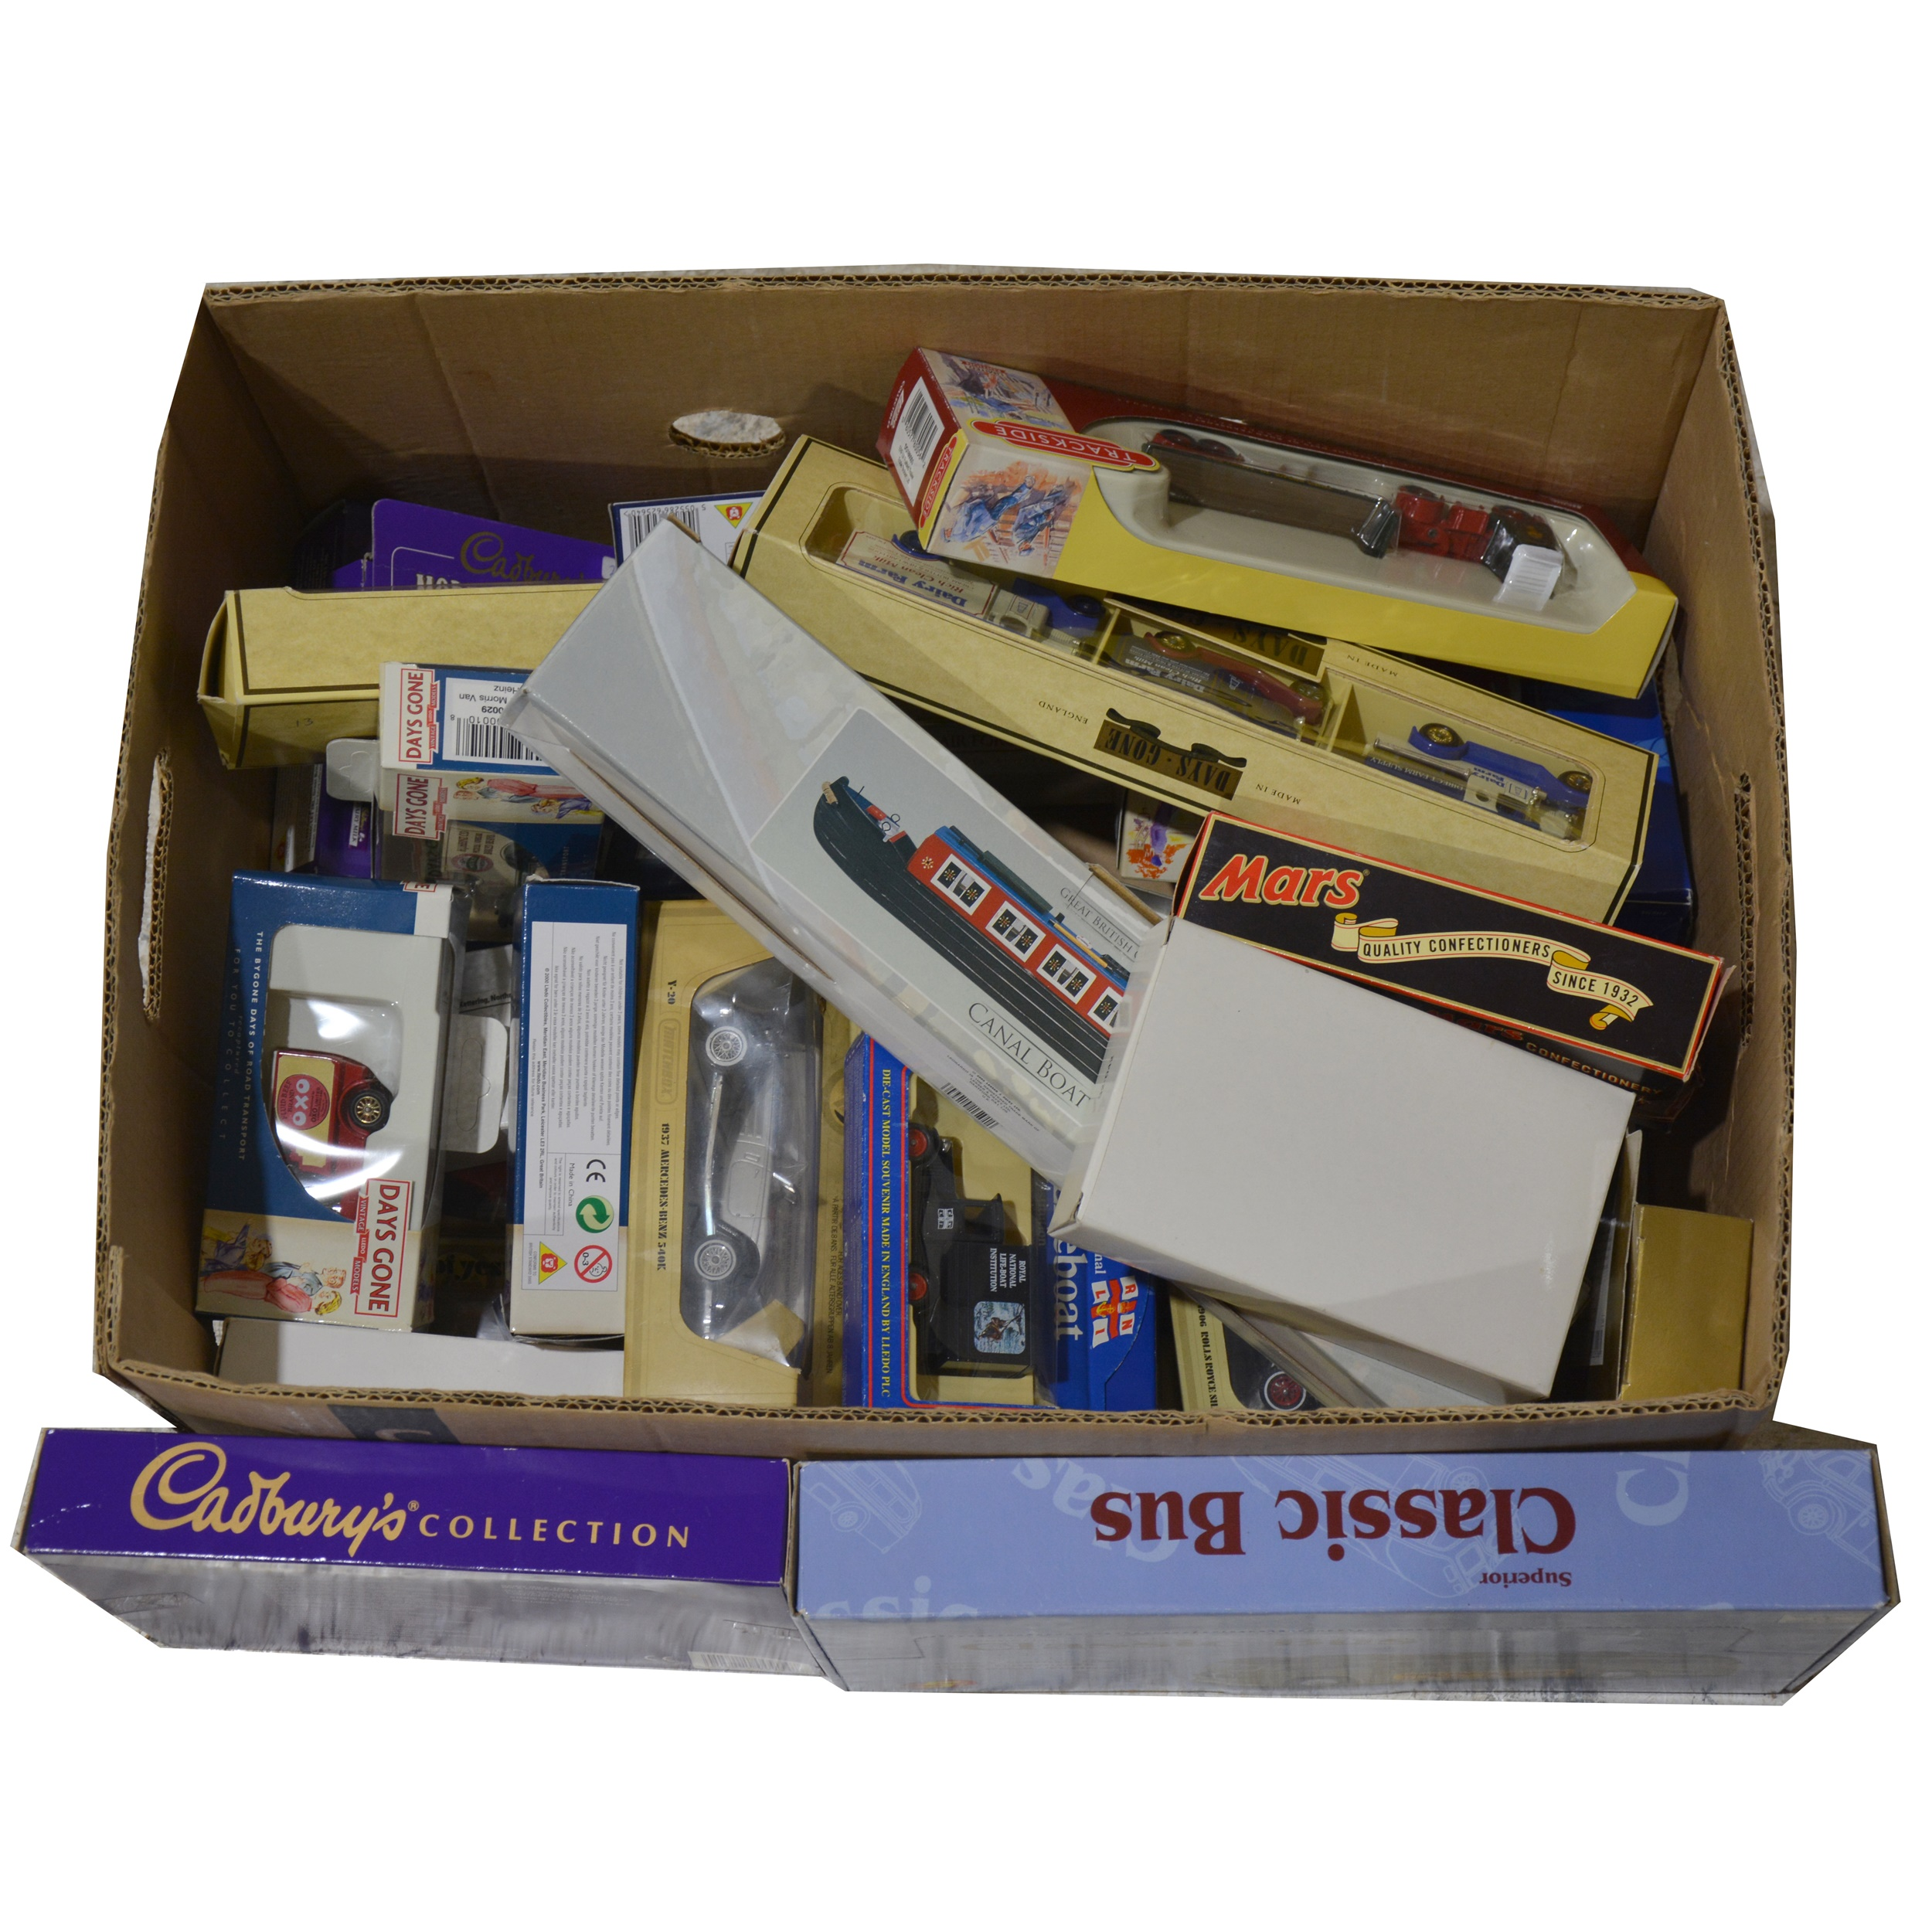 One box full of modern die-cast vans and vehicles, mostly Lledo and Matchbox